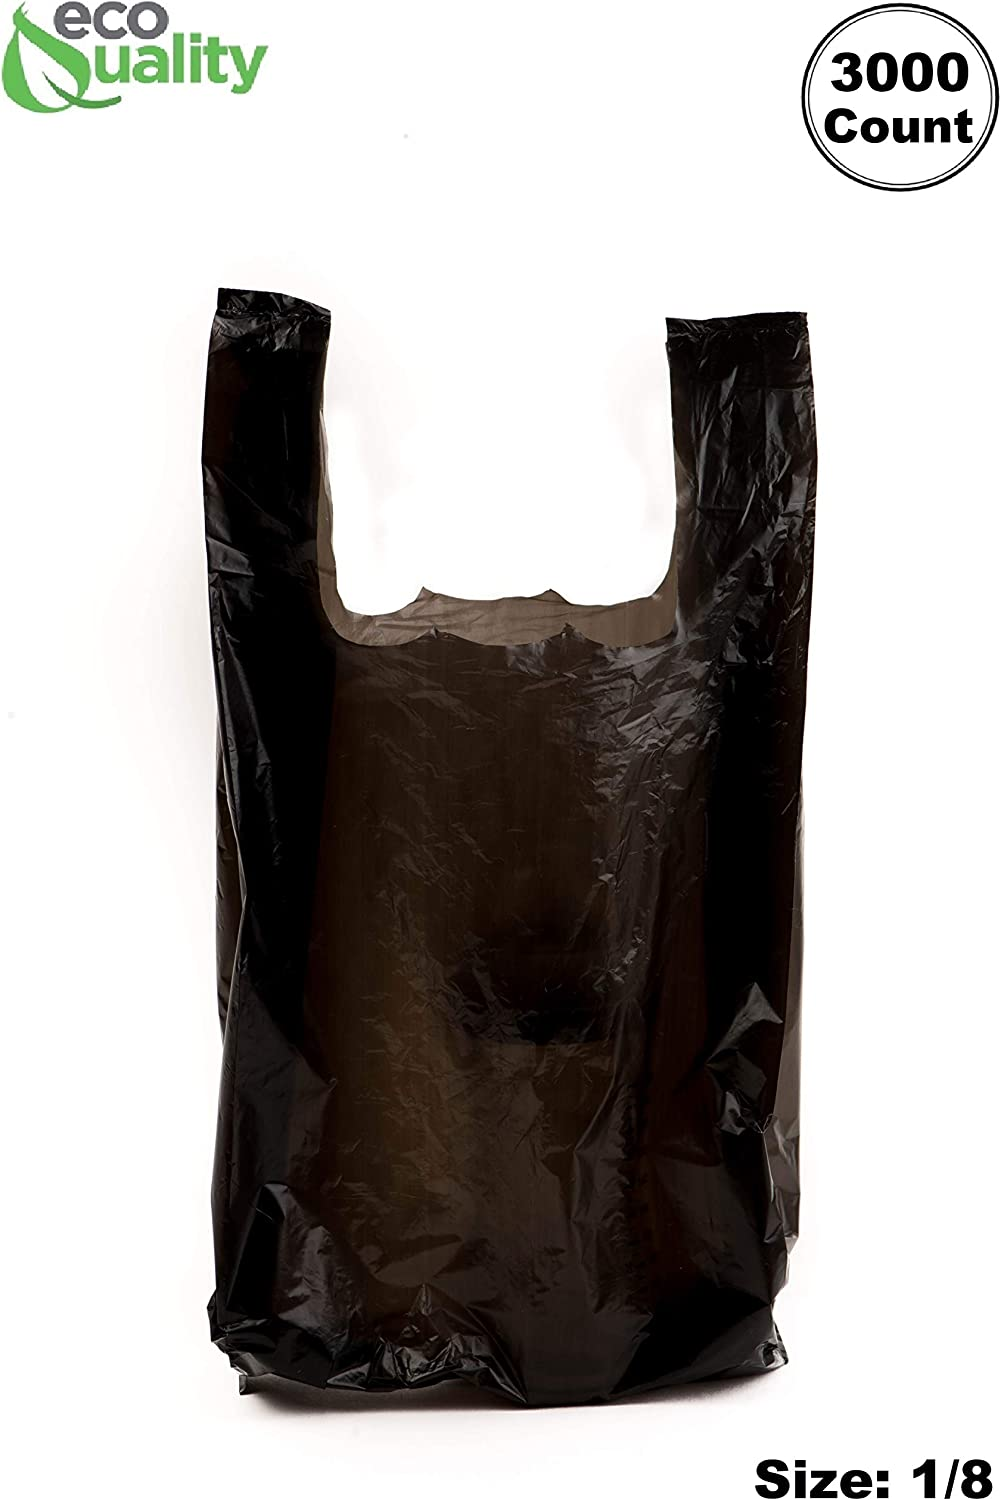 1500ct T-Shirt Black Plastic Bags Retail Grocery Store Shopping Carry Out Waste